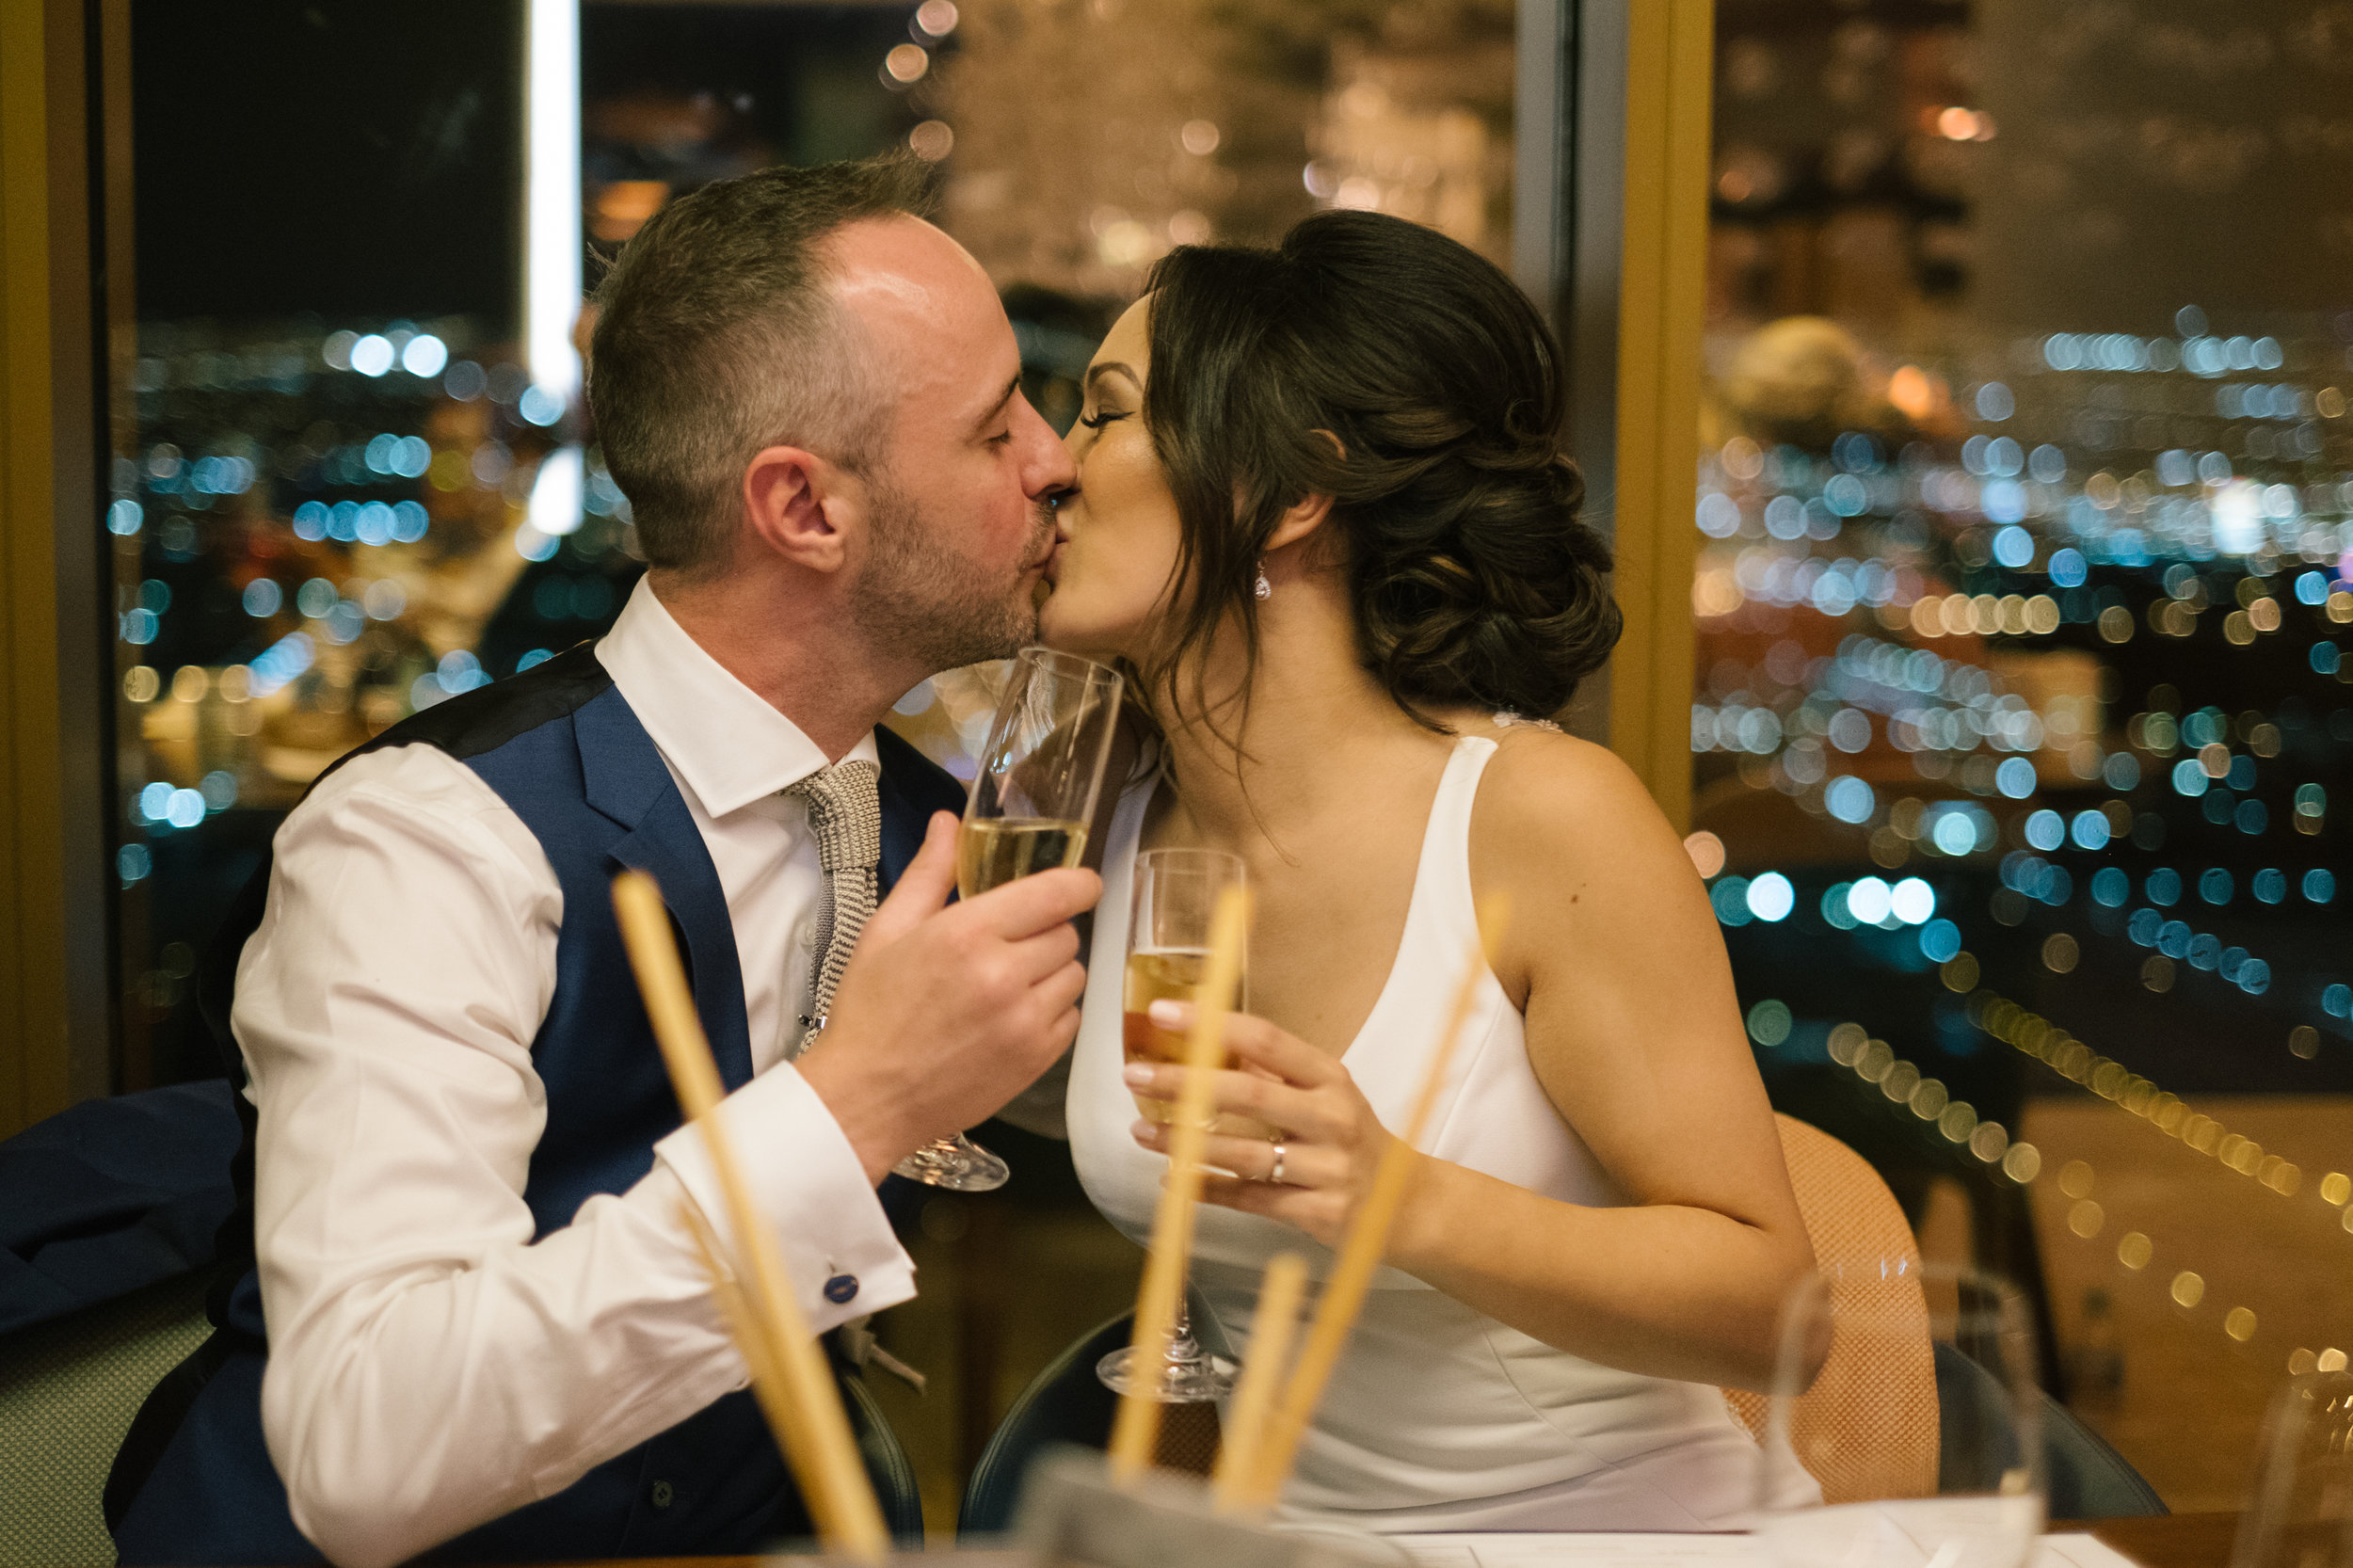 Stephanie & Ryan-2215.jpg